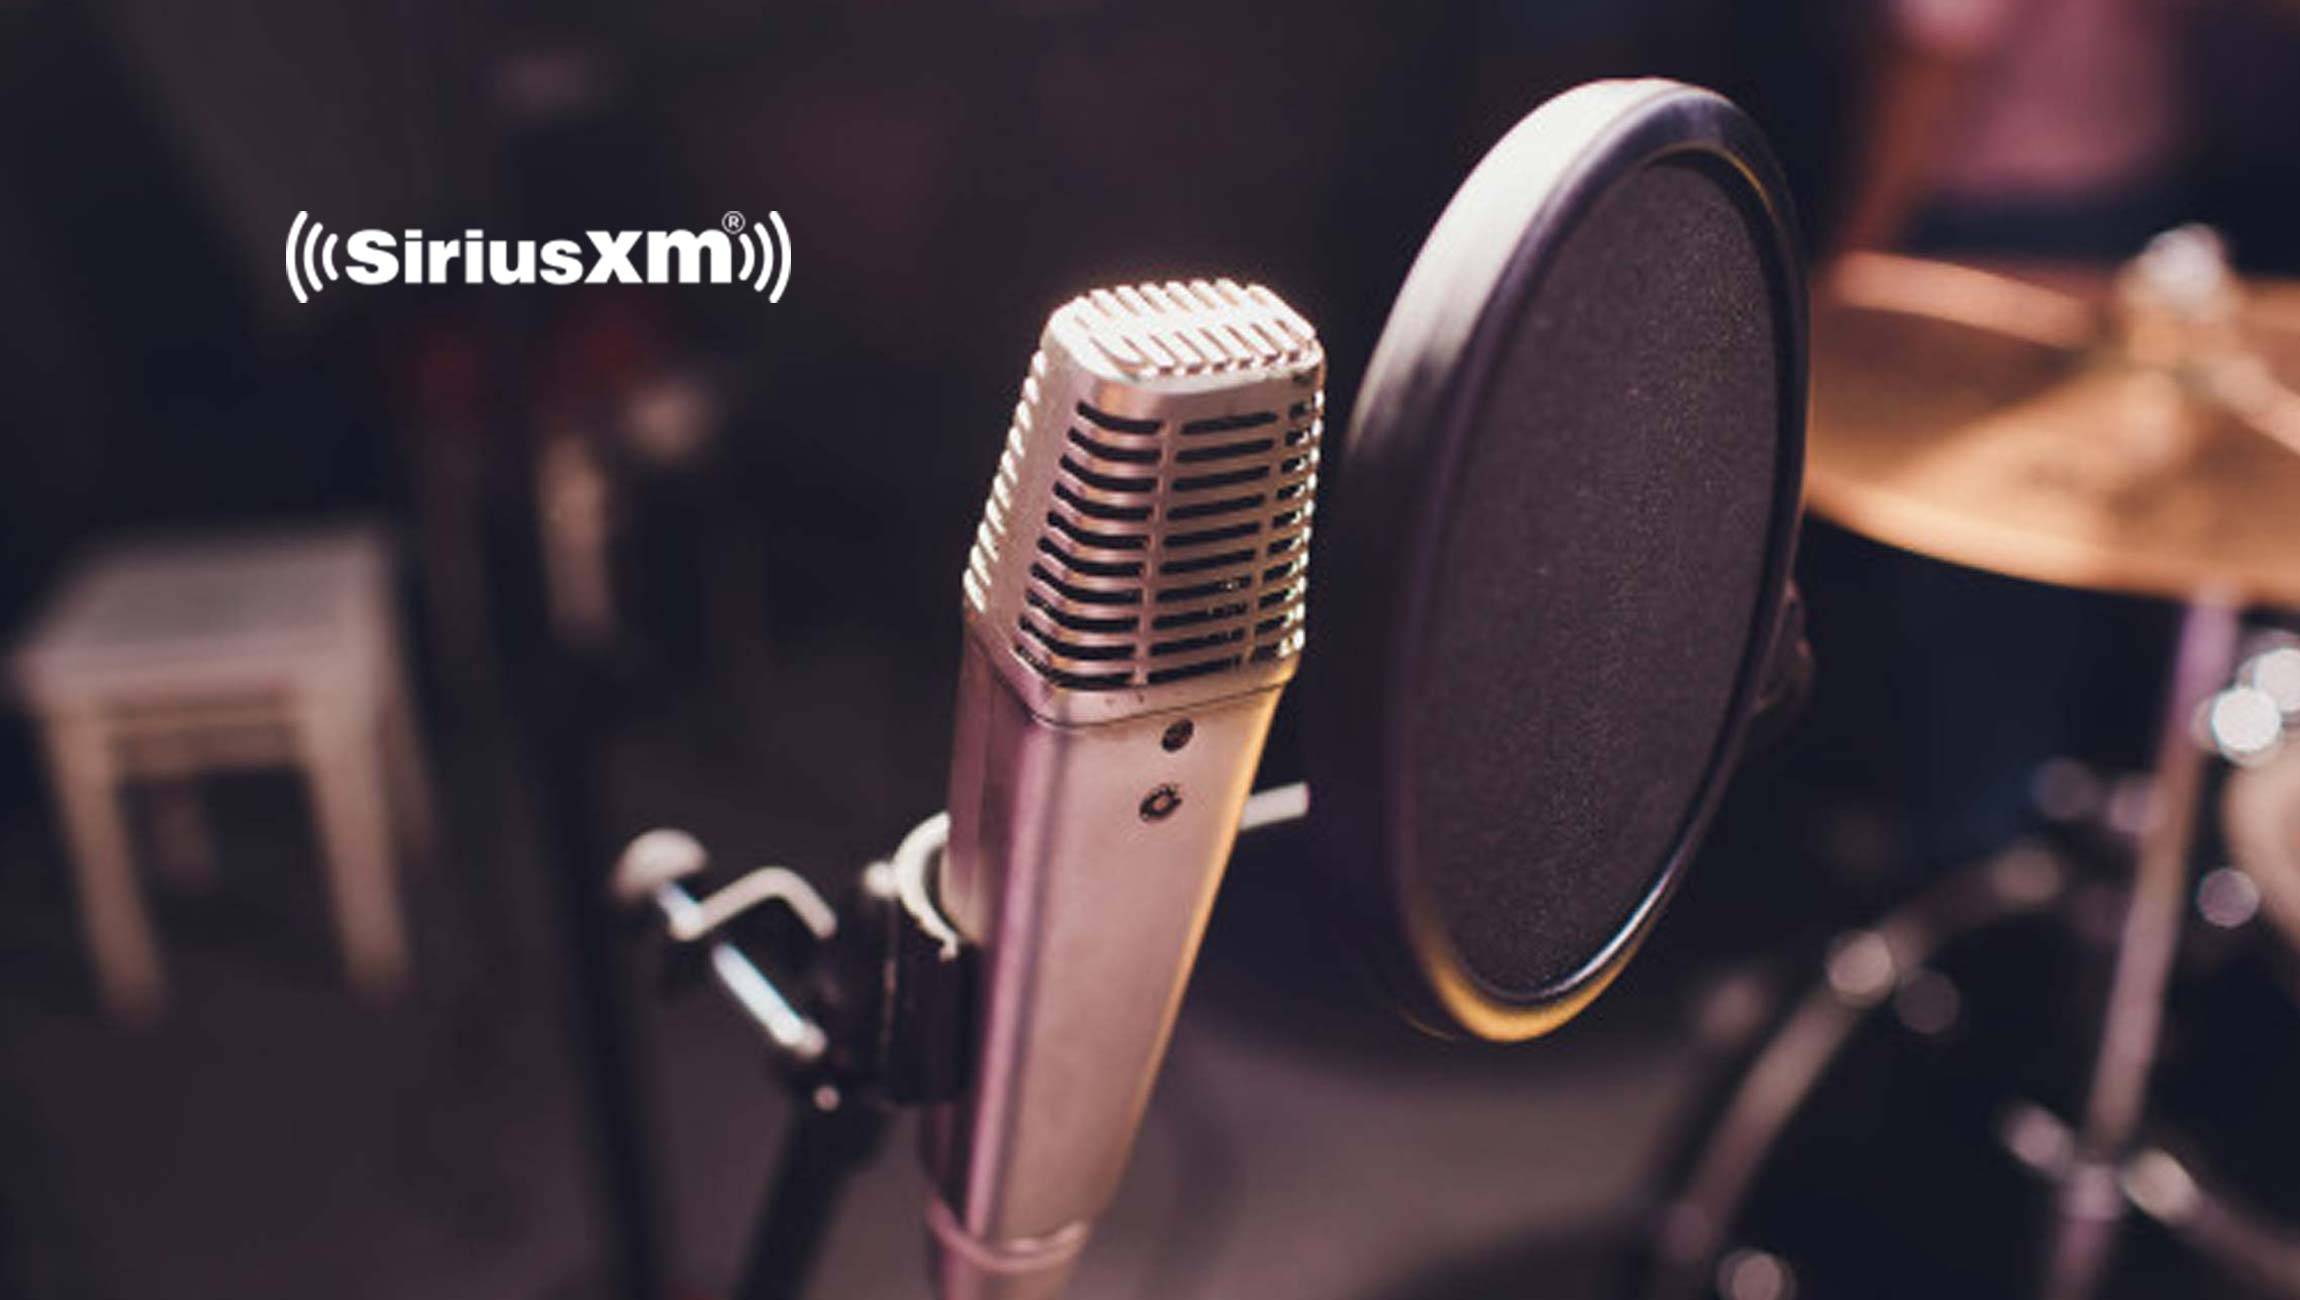 SiriusXM Completes Acquisition of Stitcher